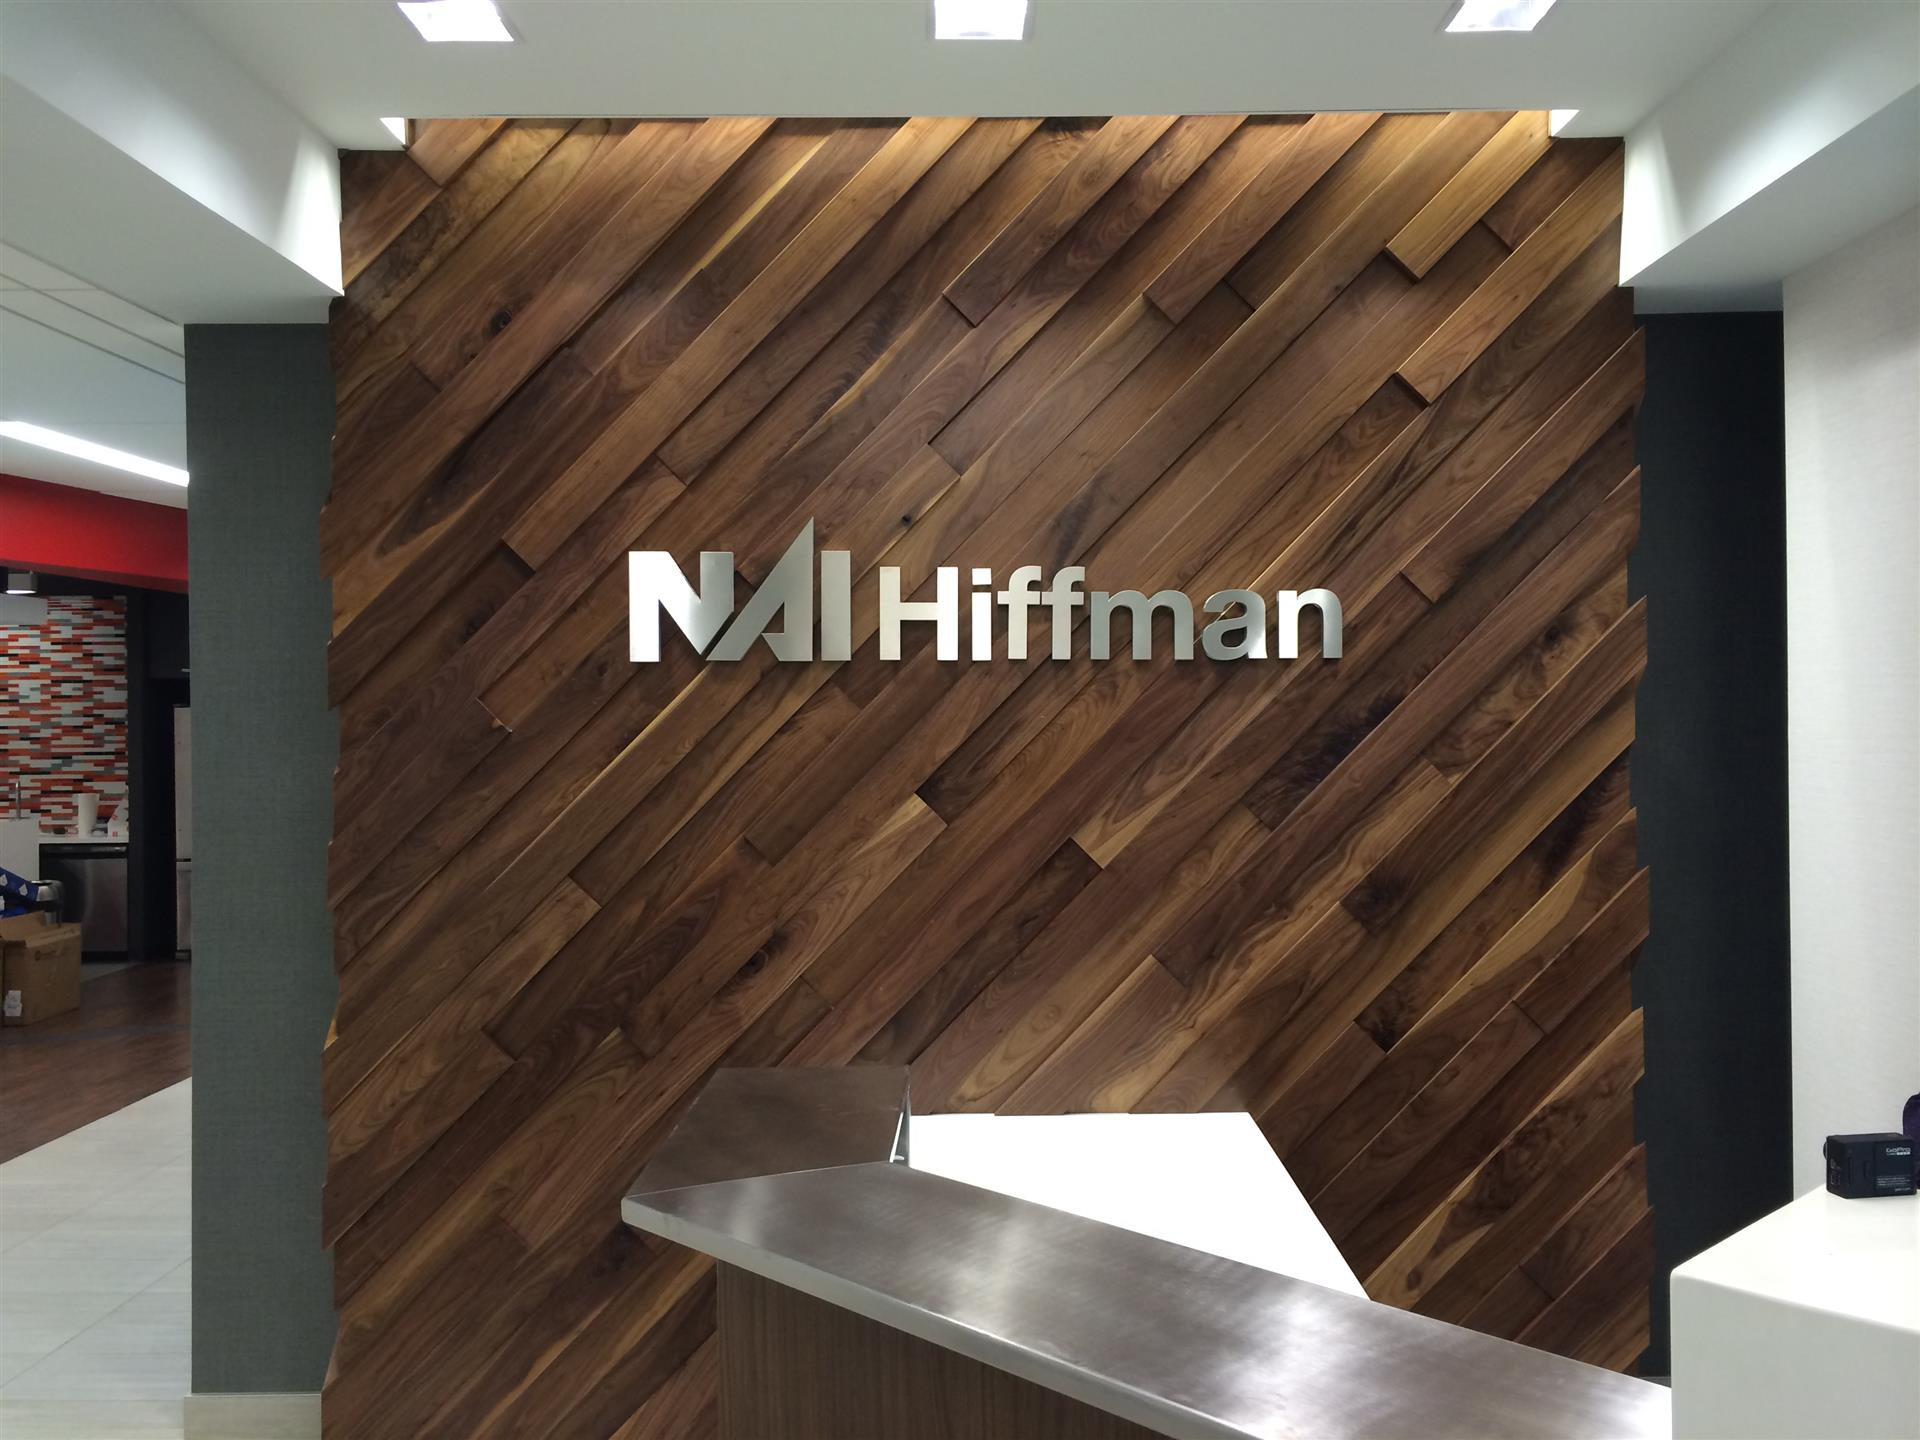 NAI Hiffman Reception Sign